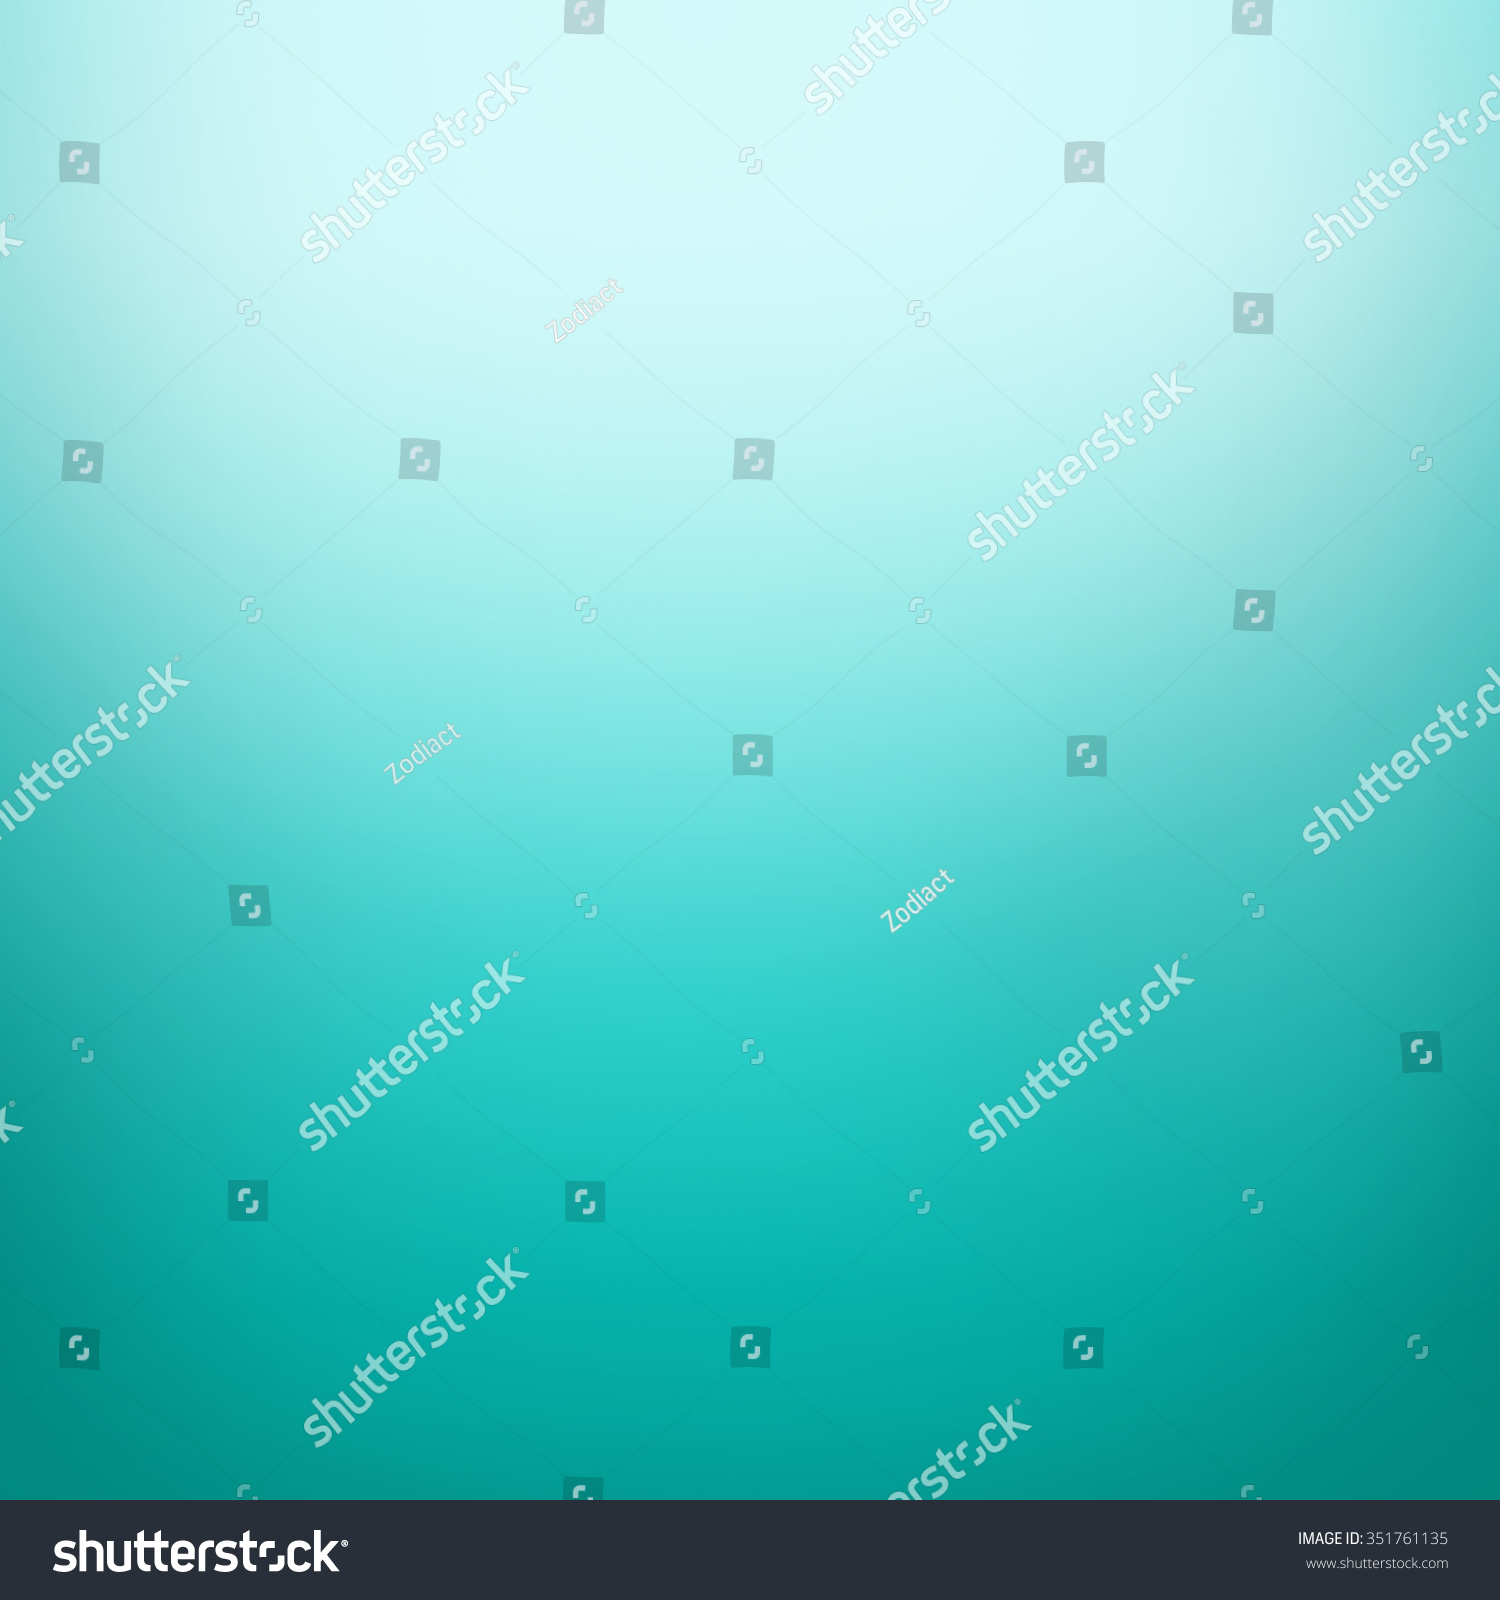 Abstract Turquoise Color Gradient With Dark Border And White Beige Background Faded